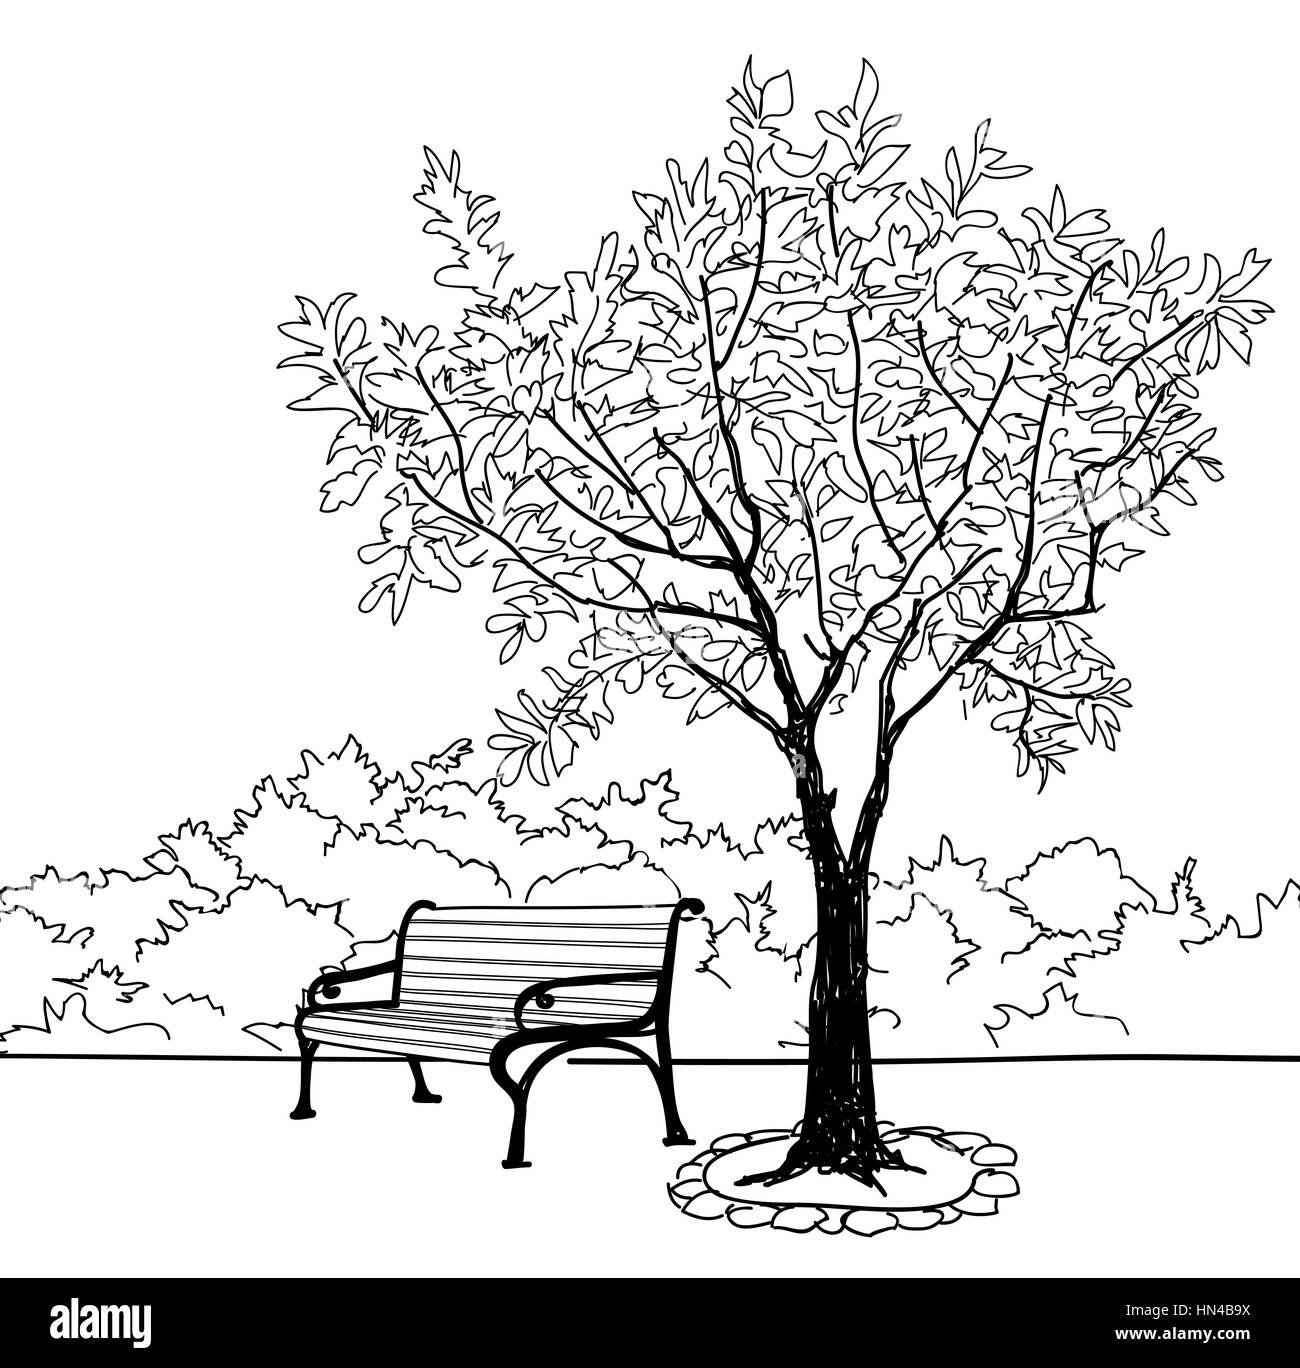 Bench in city park. Trees and plants. Landscape with bench. Doodle landscape vector illustration Stock Vector